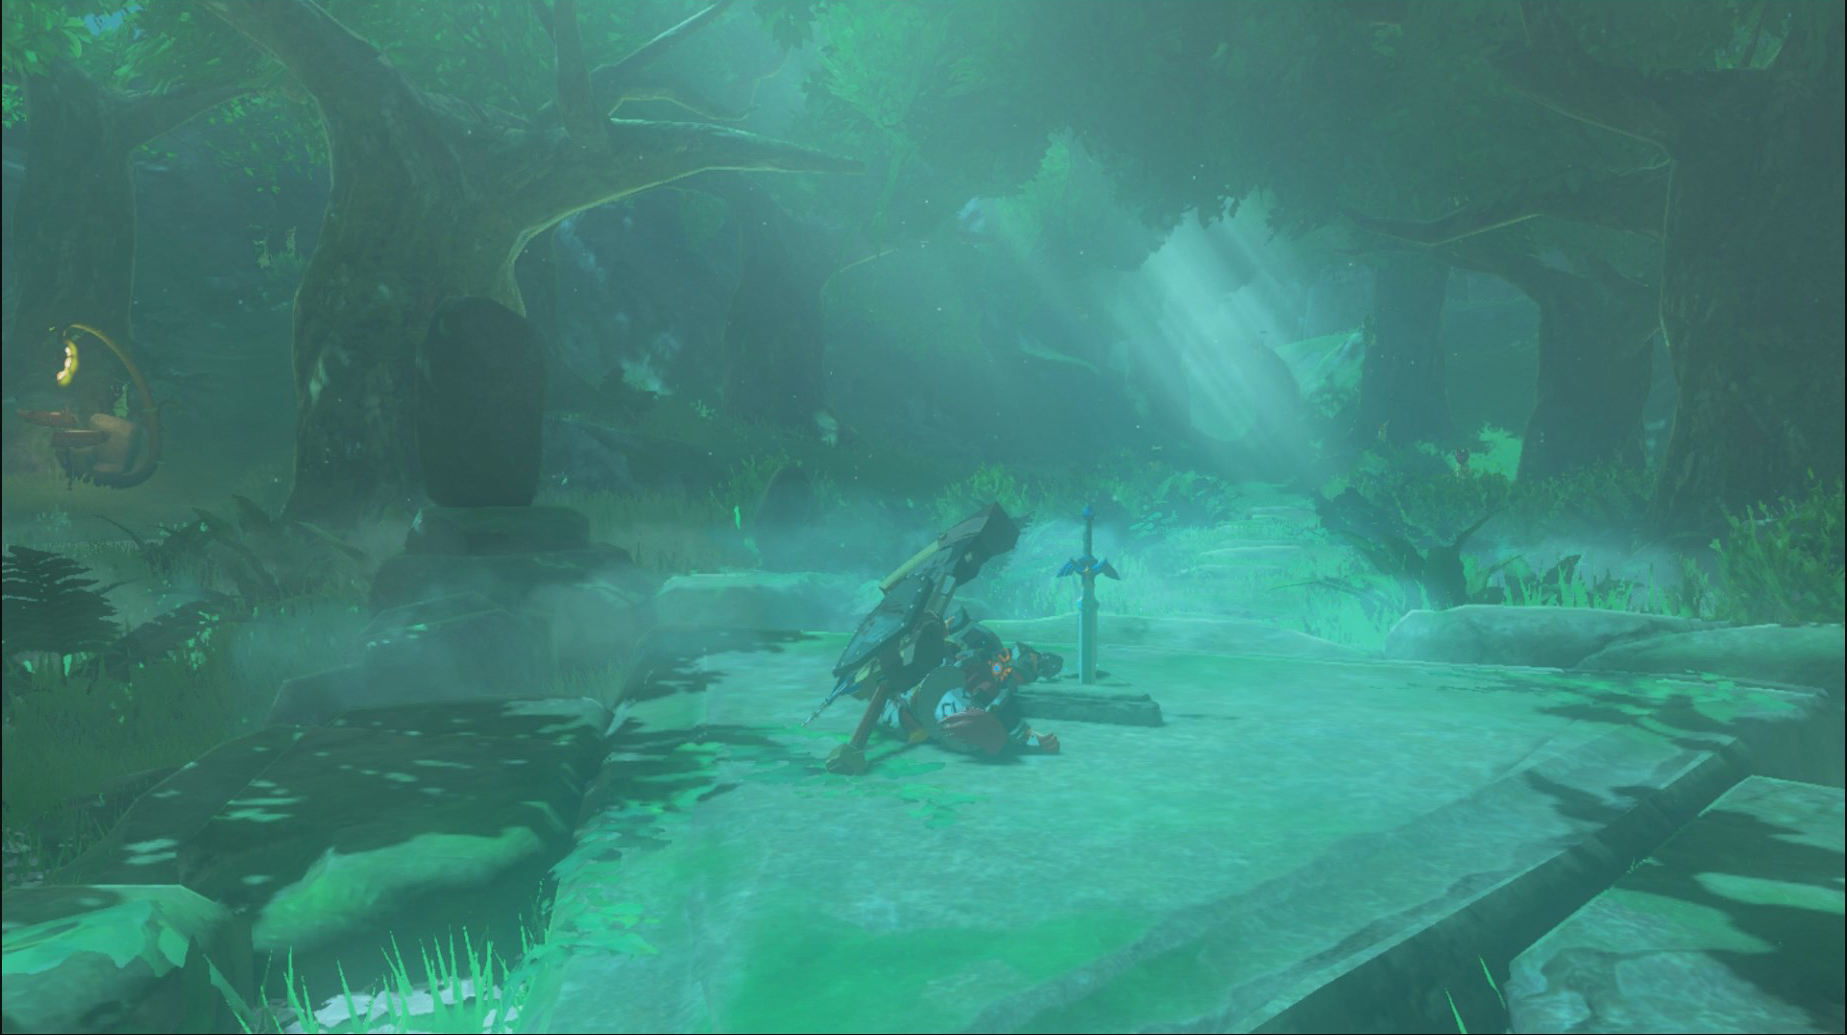 During The Calamity, Zelda Took The Master Sword To The Great Hyrule Forest  Where She Knew The Great Deku Tree Would Protect It. As An Added Safeguard,  ...